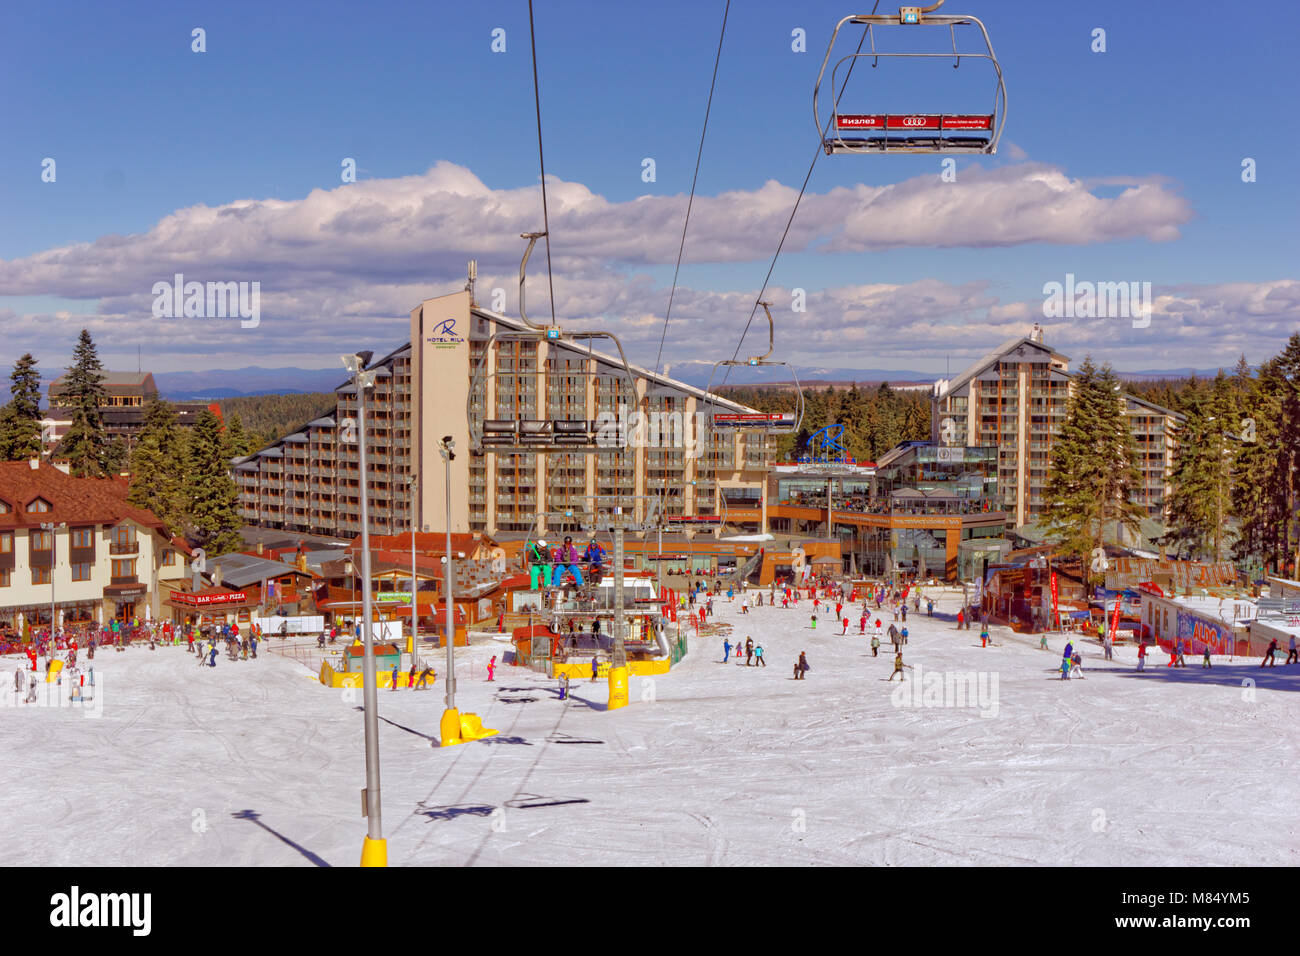 Rila Hotel and slopes at Borovets Ski resort, Targovishte, Bulgaria. - Stock Image